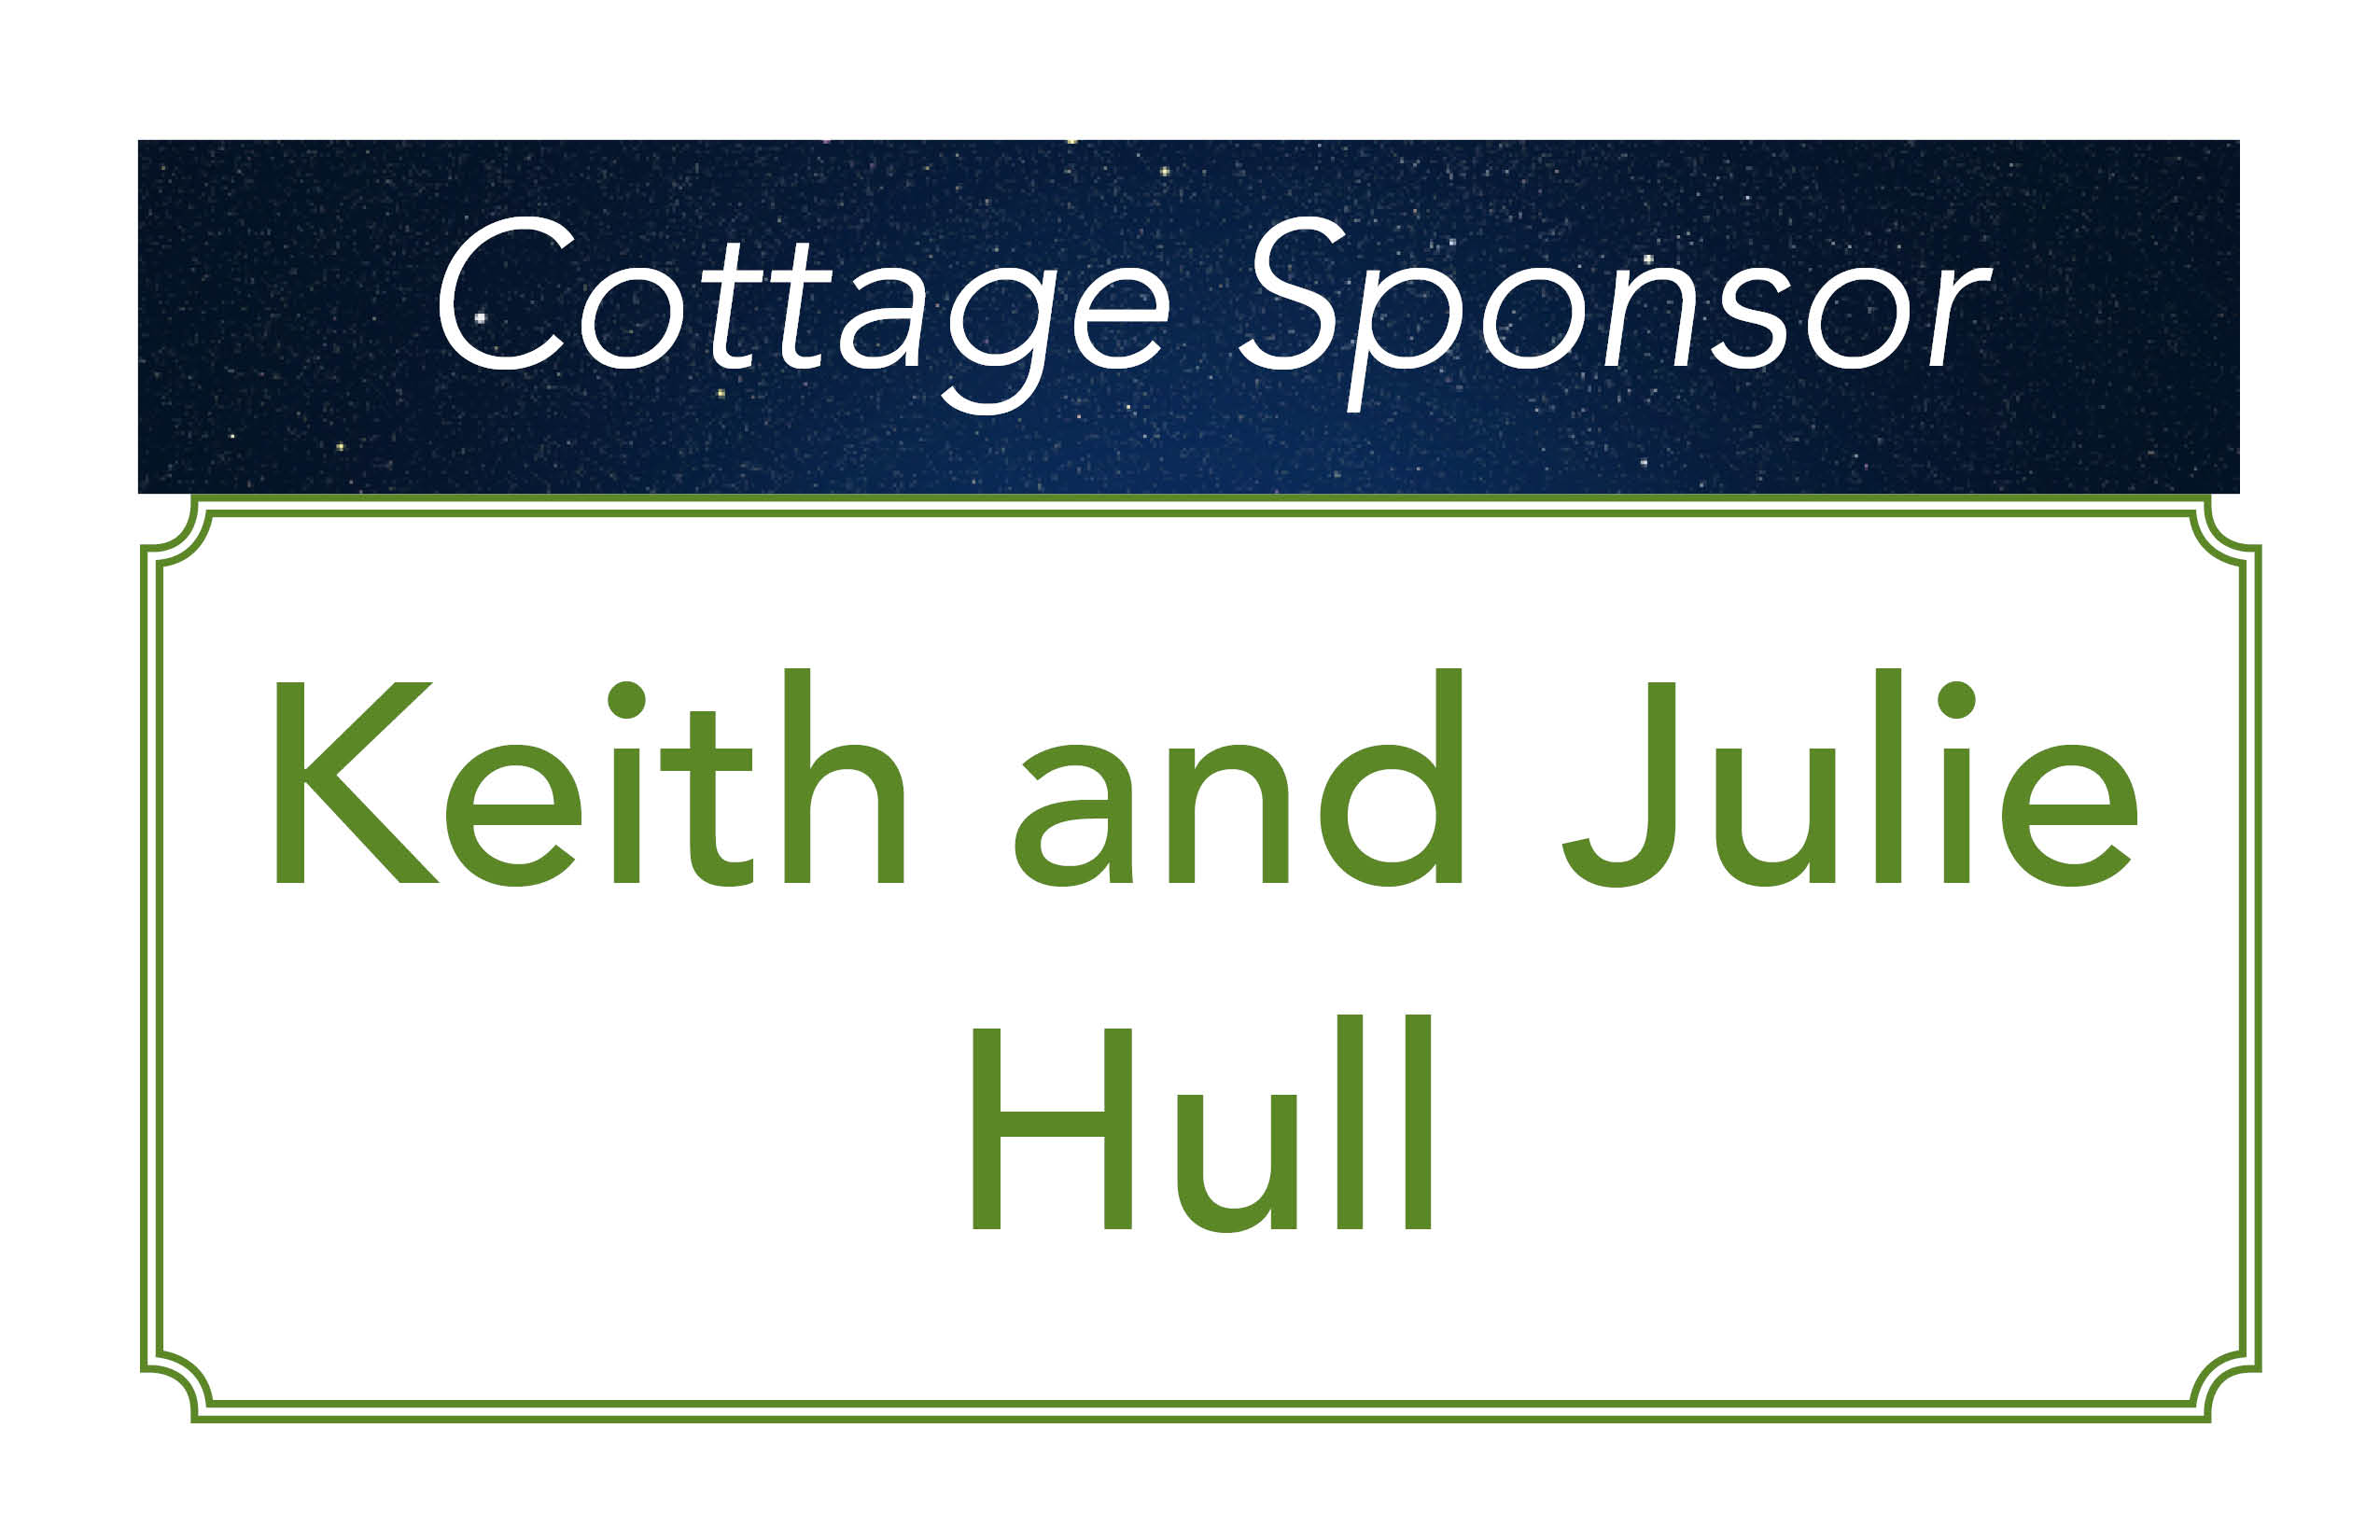 Keith and Julie Hull, Cottage Sponsors